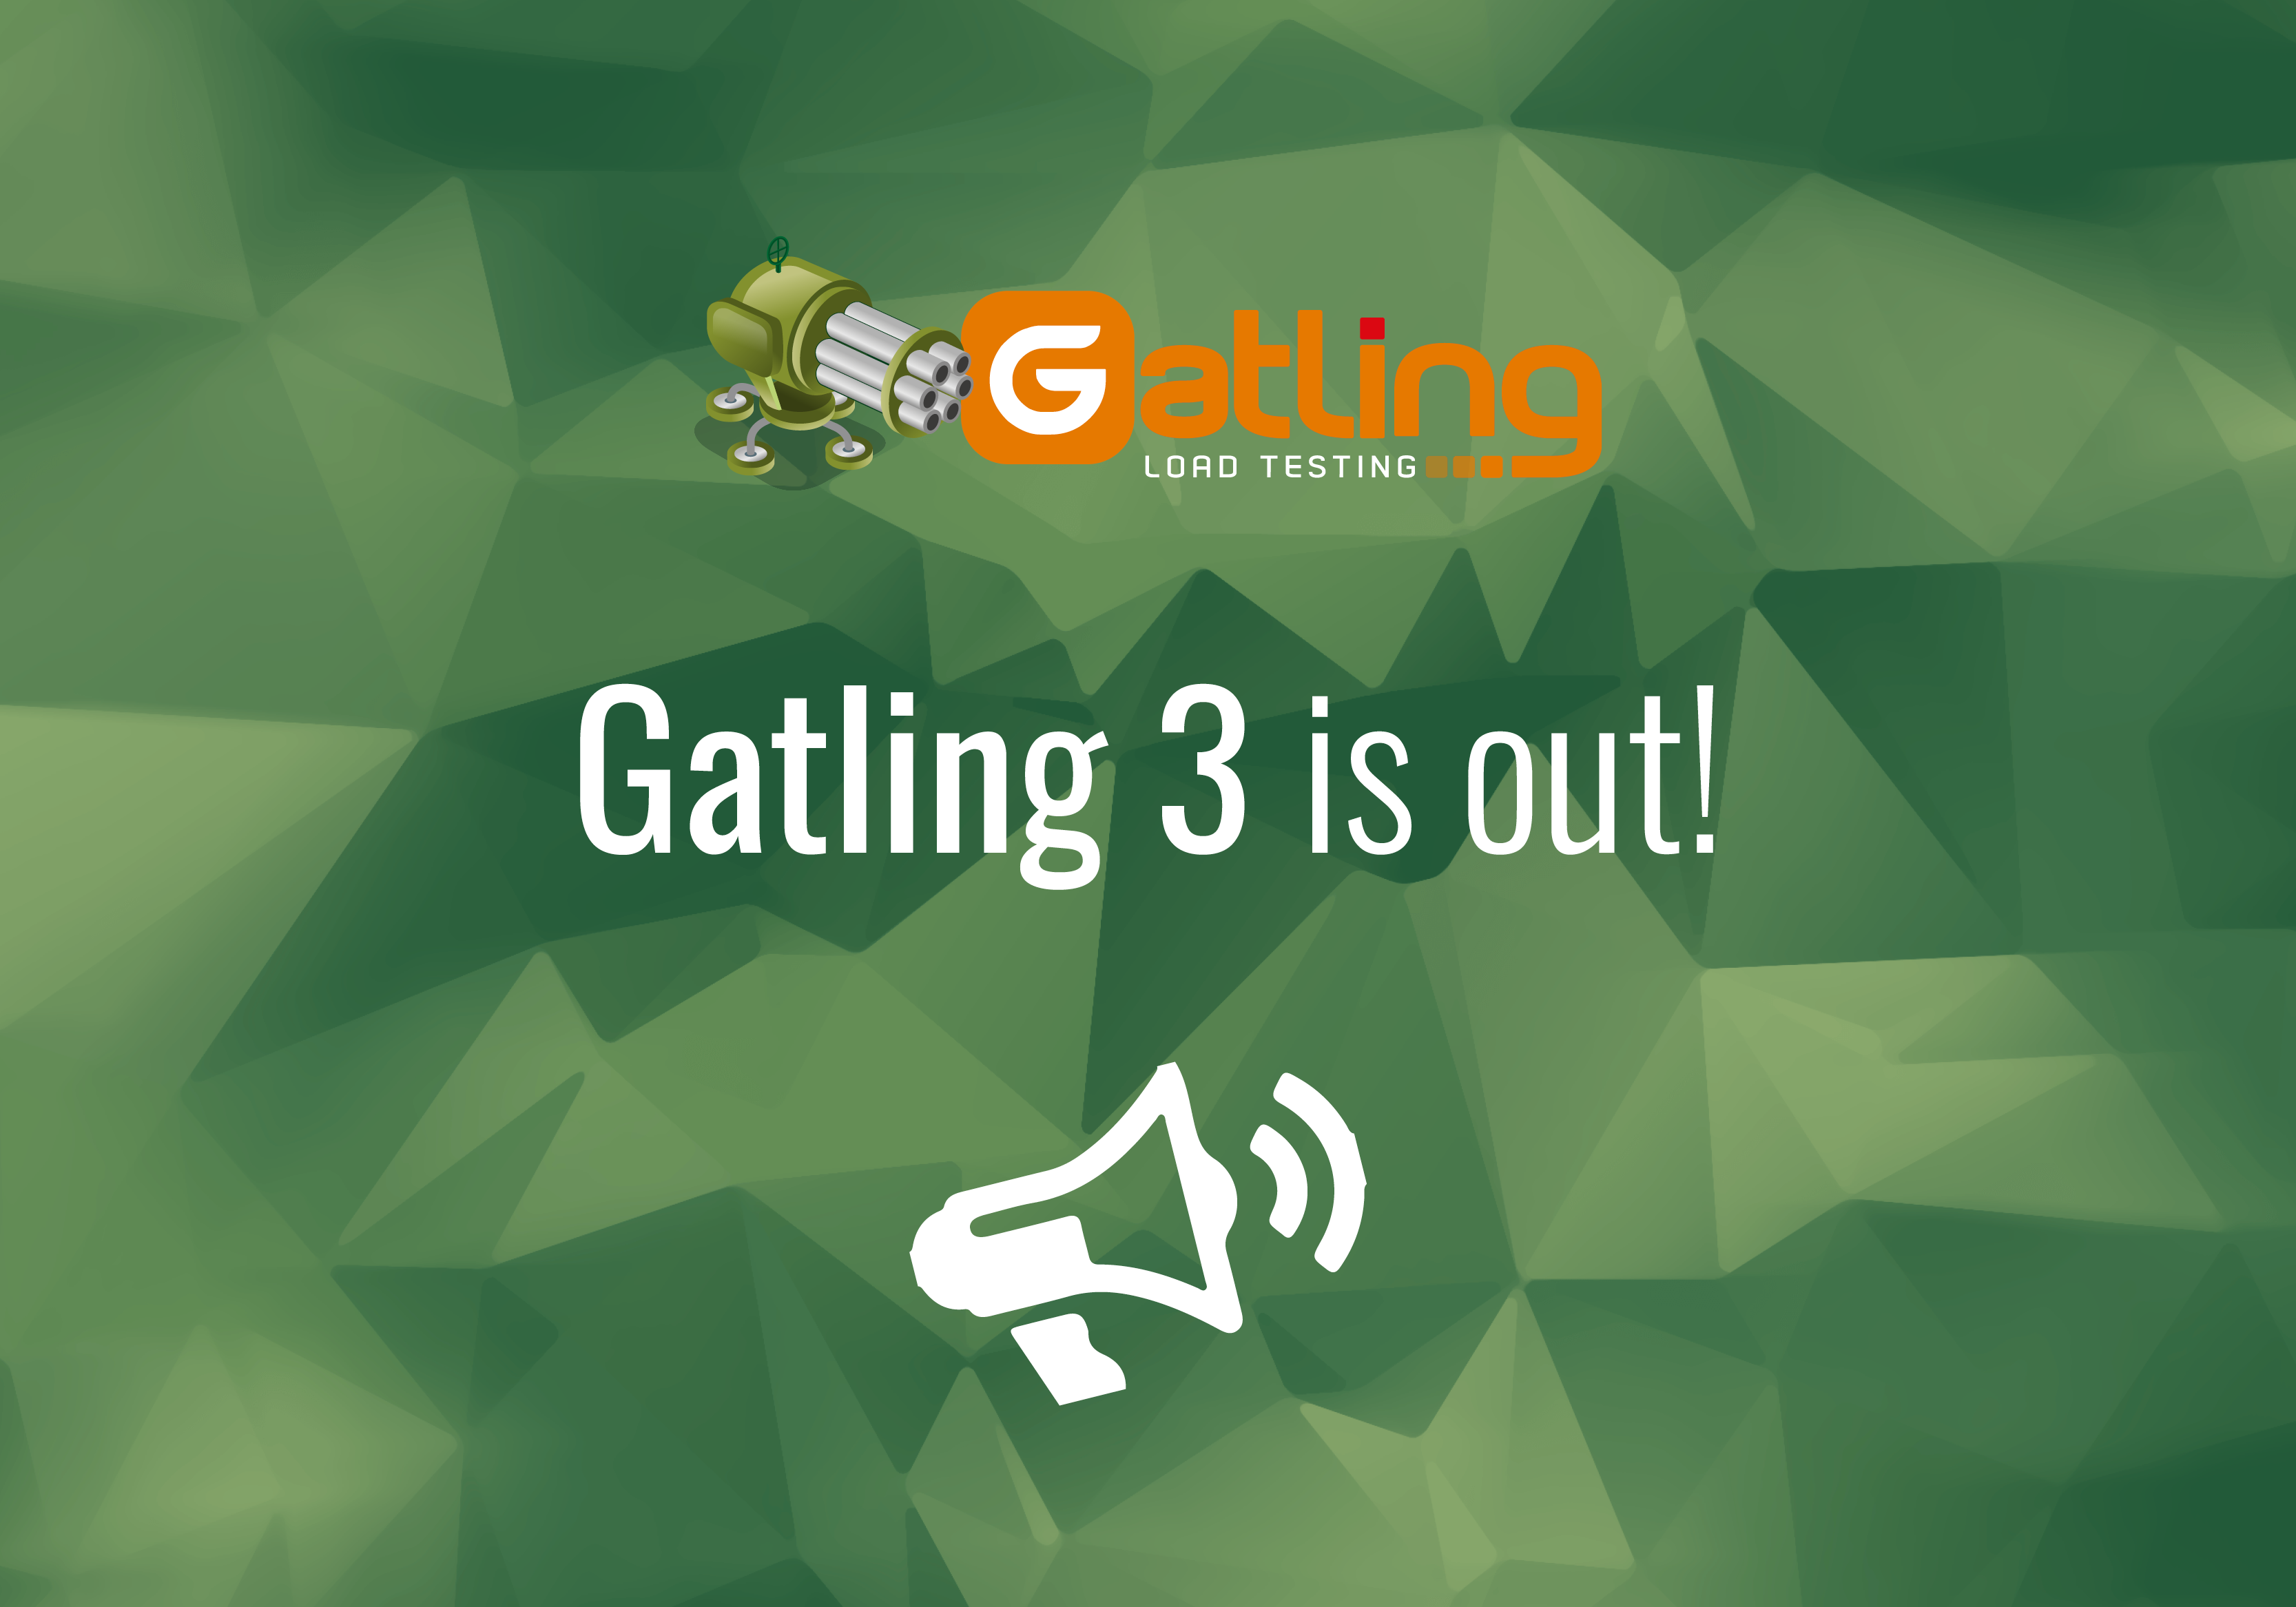 Gatling 3 is out